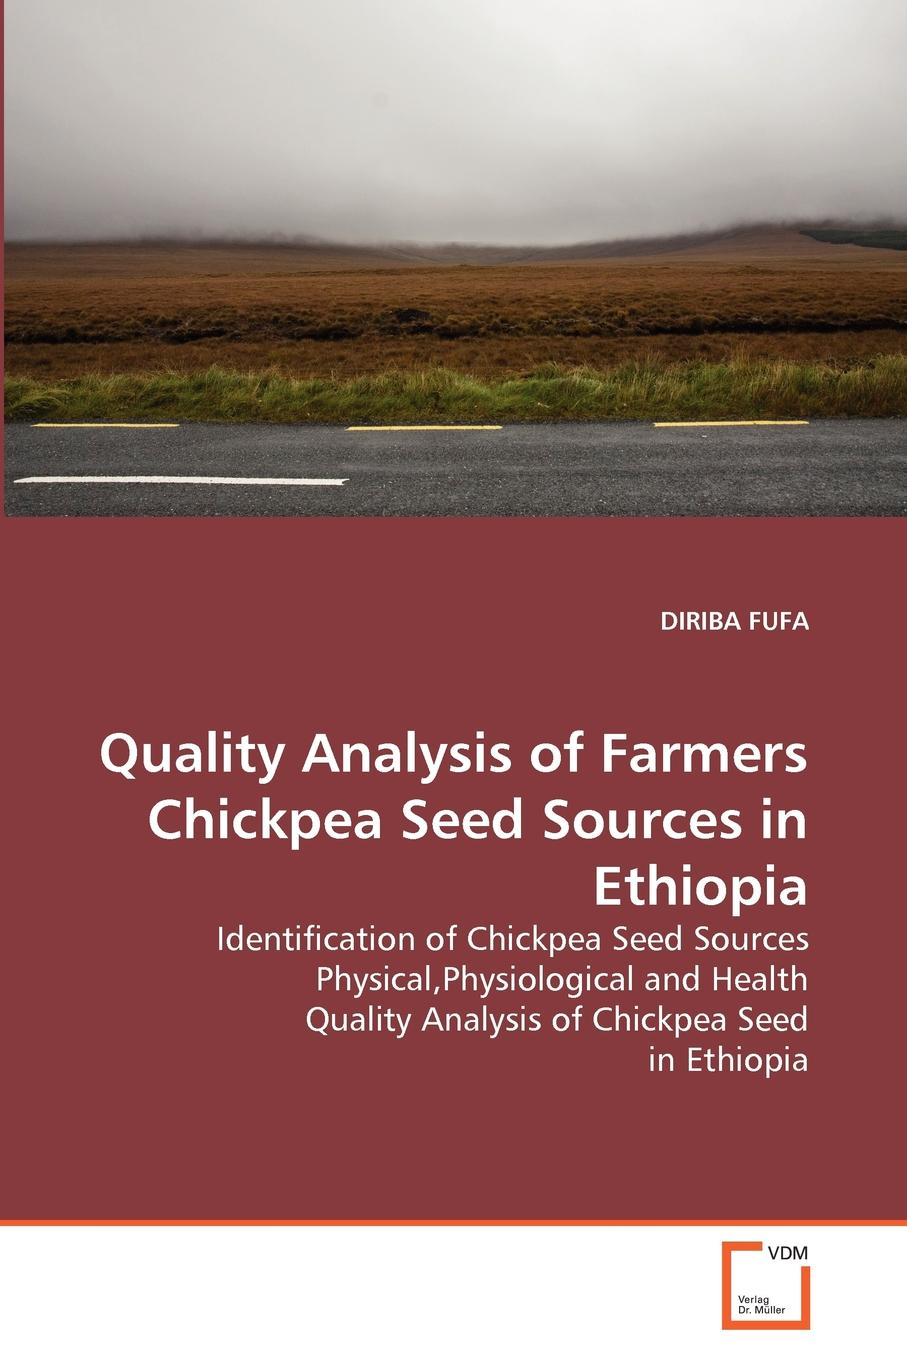 DIRIBA FUFA Quality Analysis of Farmers Chickpea Seed Sources in Ethiopia indian agricultural export in the liberalized era